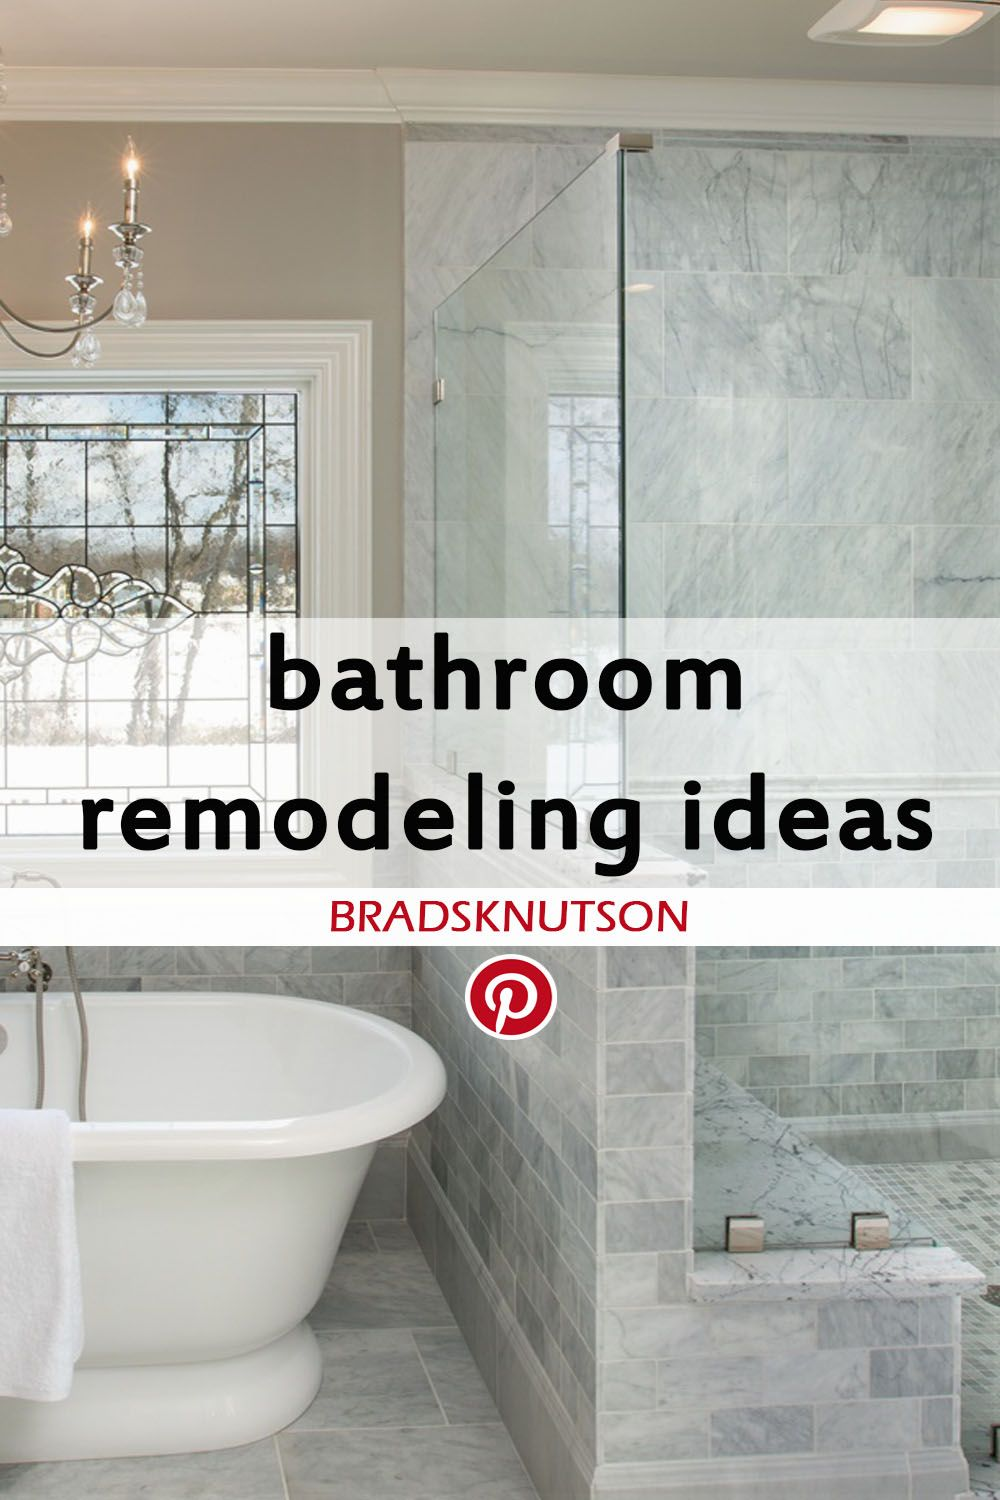 11 Diy Bathroom Remodeling Ideas With Before After Picture To